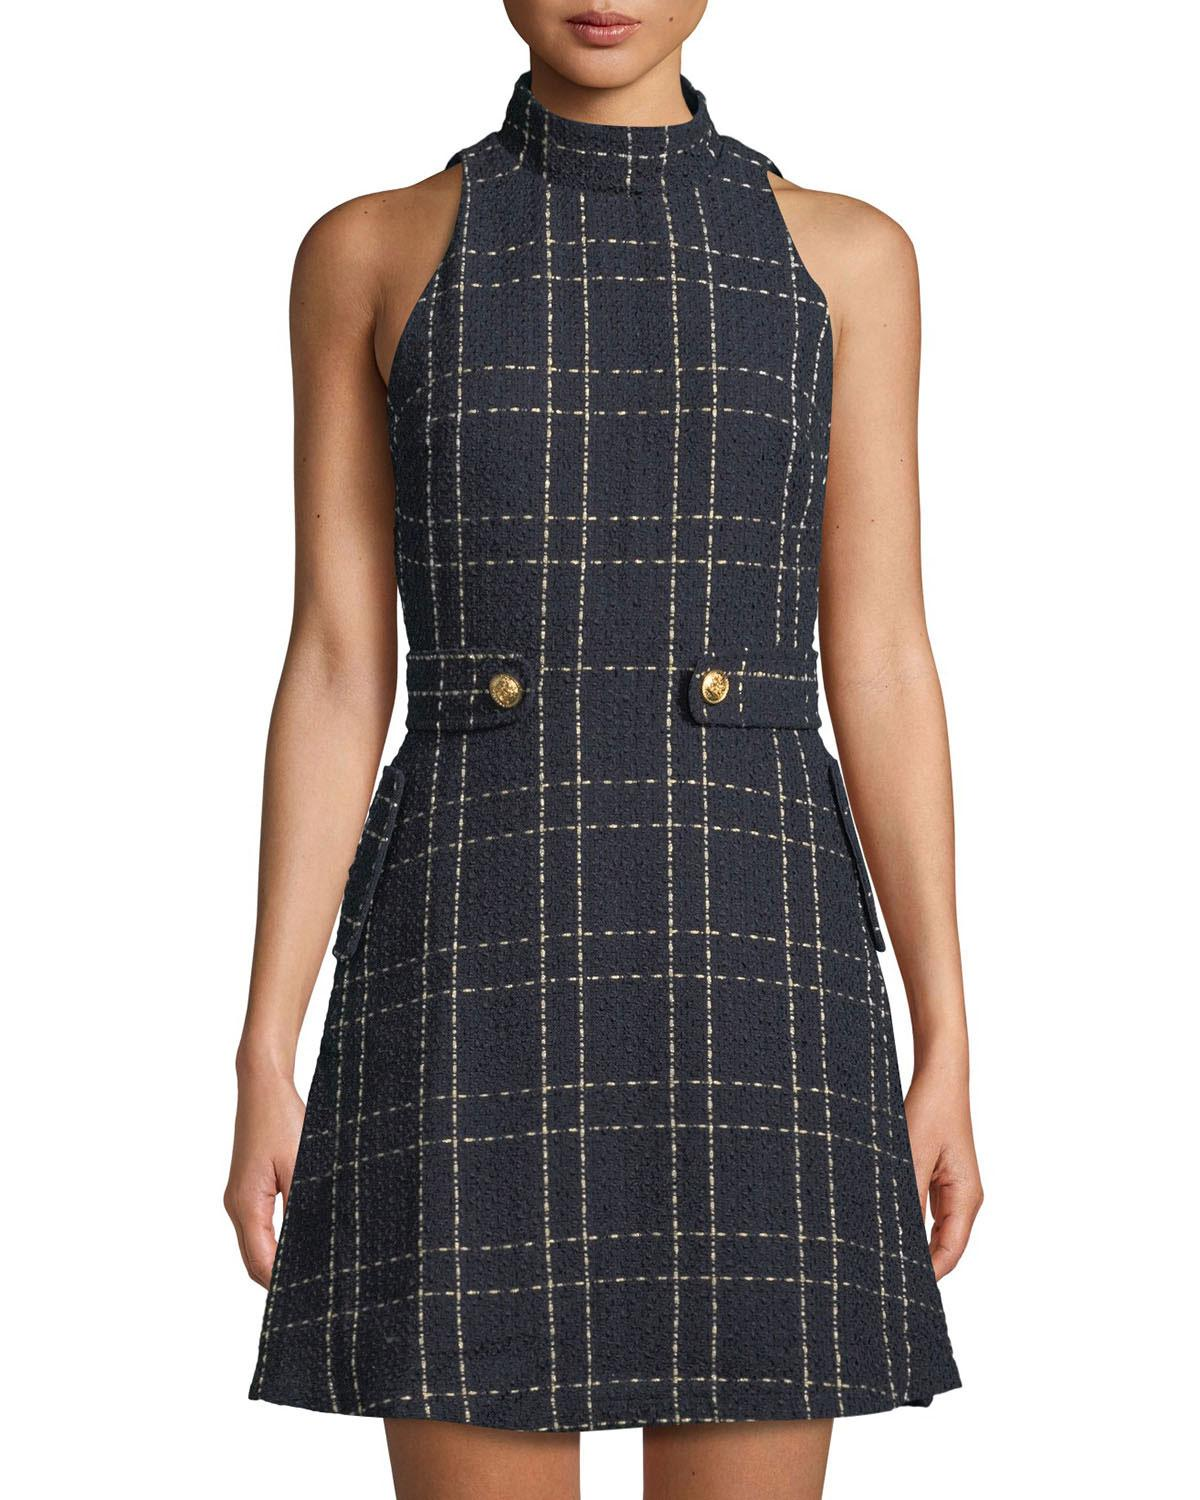 Alexia Admor Synthetic Metallic Plaid Belted Fit And Flare